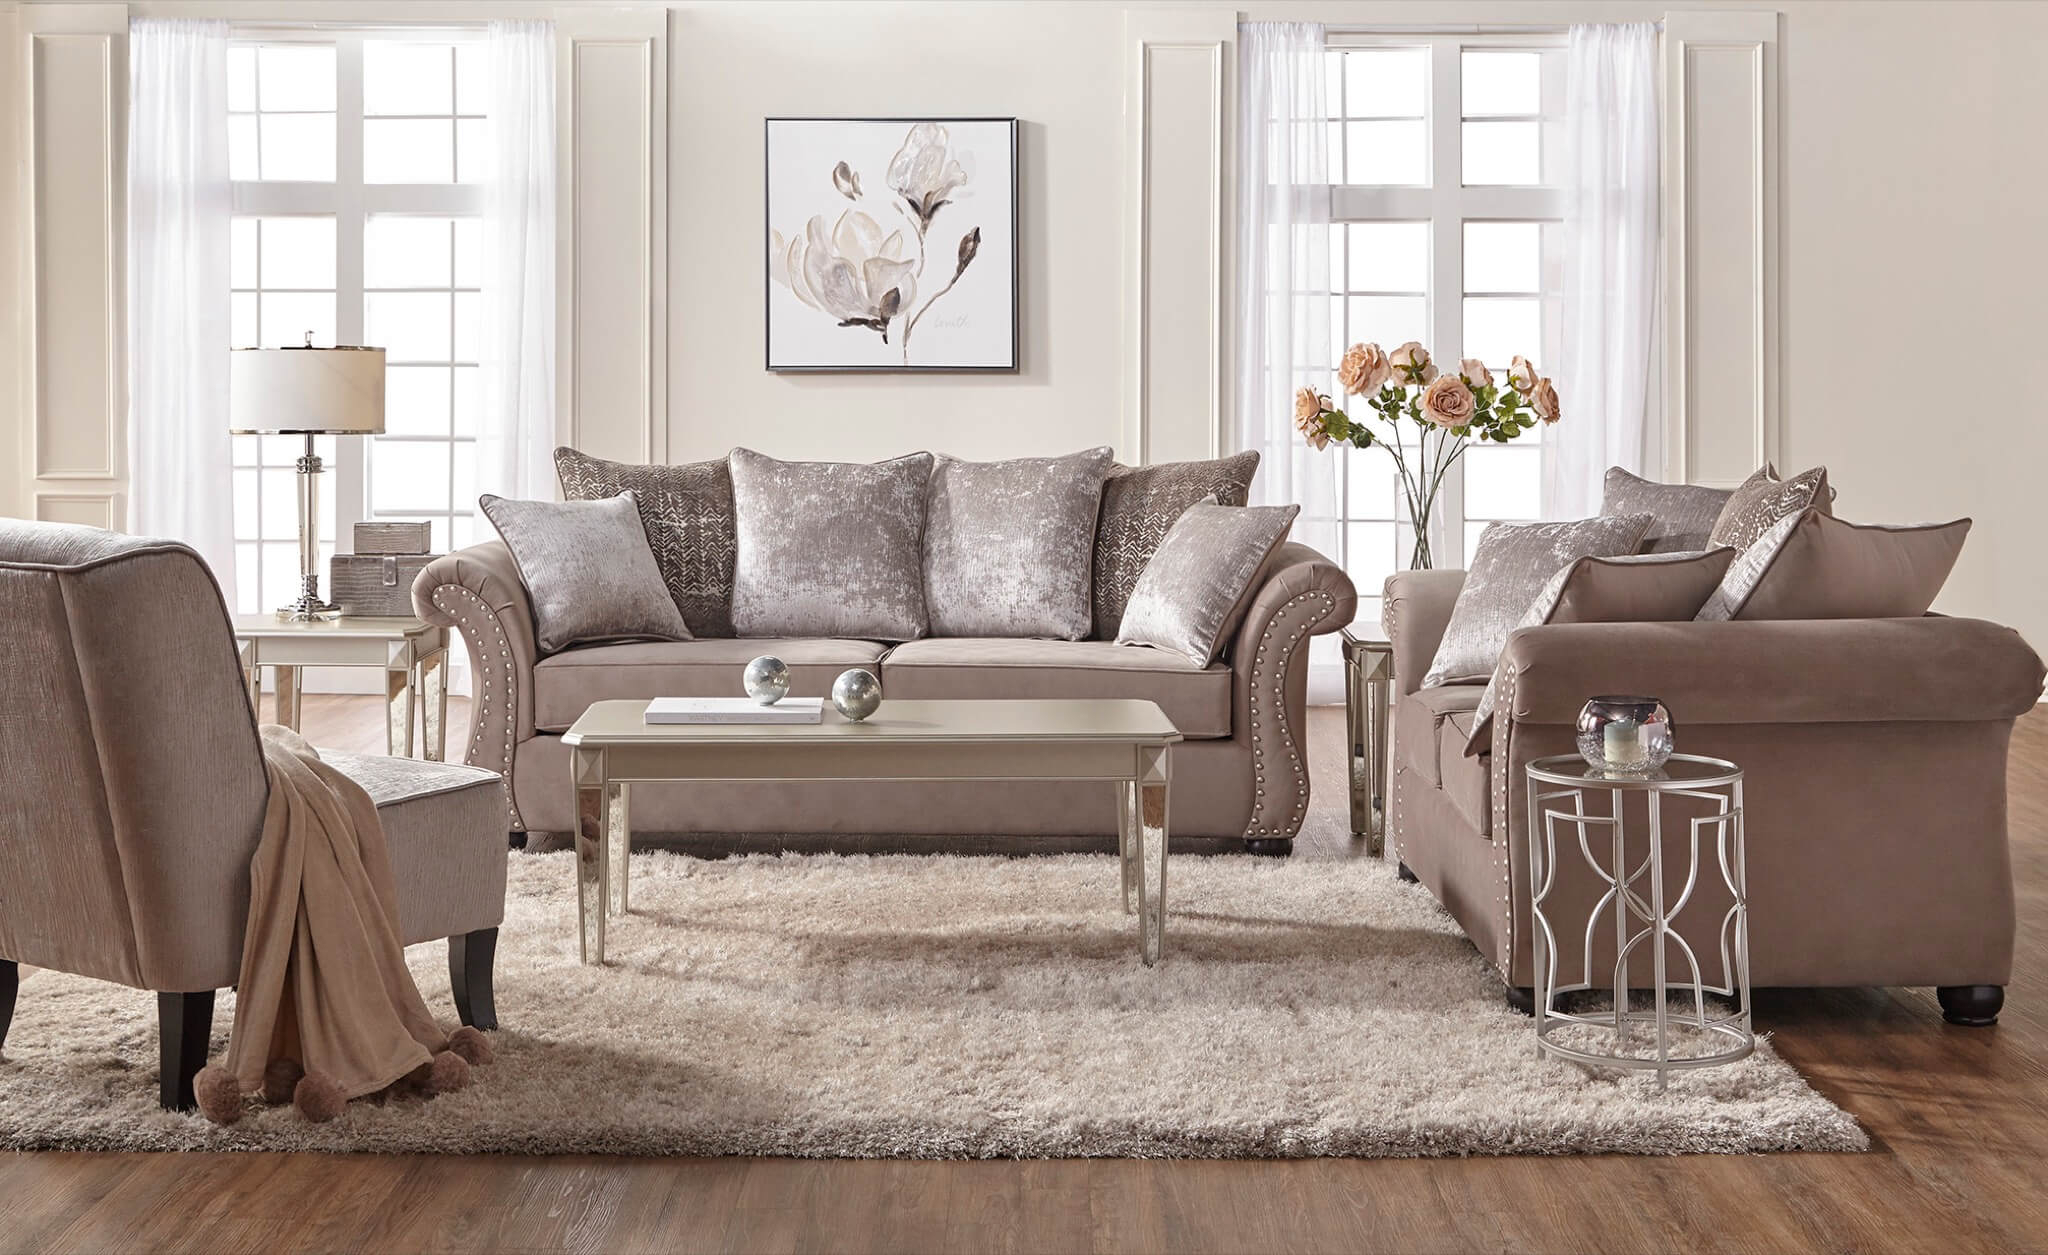 Cosmo Putty Sofa And Loveseat | Fabric Living Room Sets Throughout Living Room Sofa And Chair Sets (View 10 of 15)